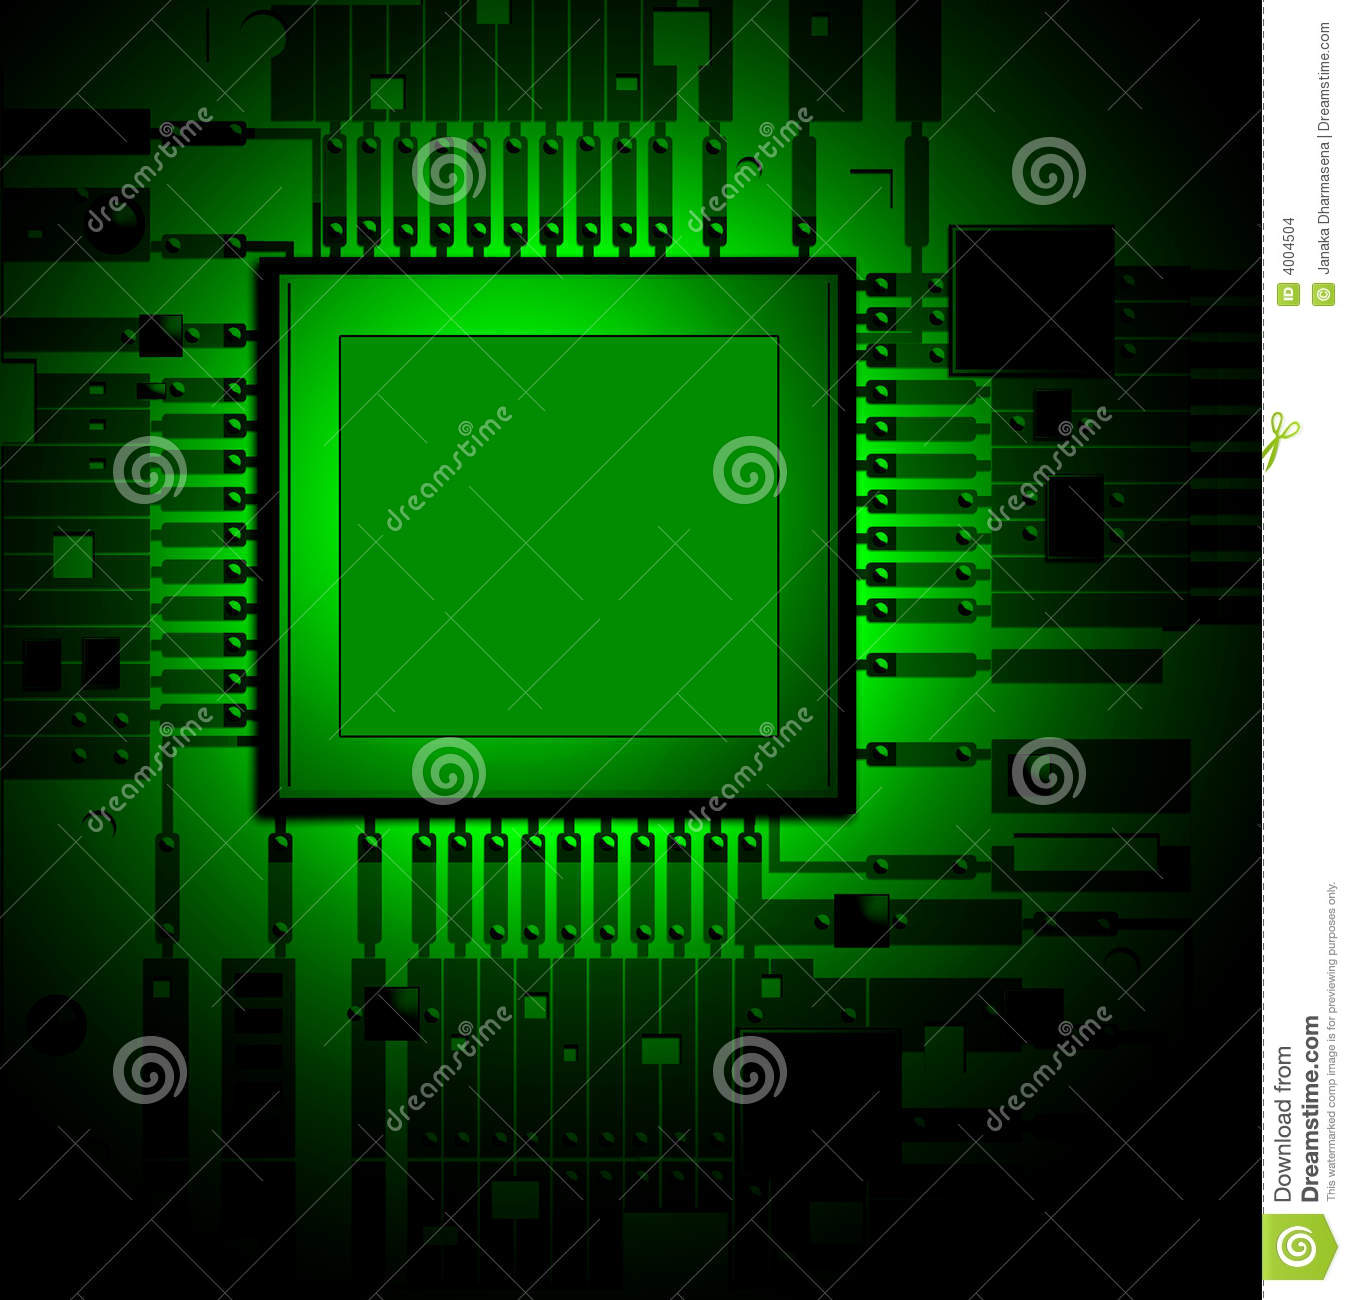 Electronic Circuit Art More Information Modni Auto Wallpaper Digital Wallpapers 13785 Board